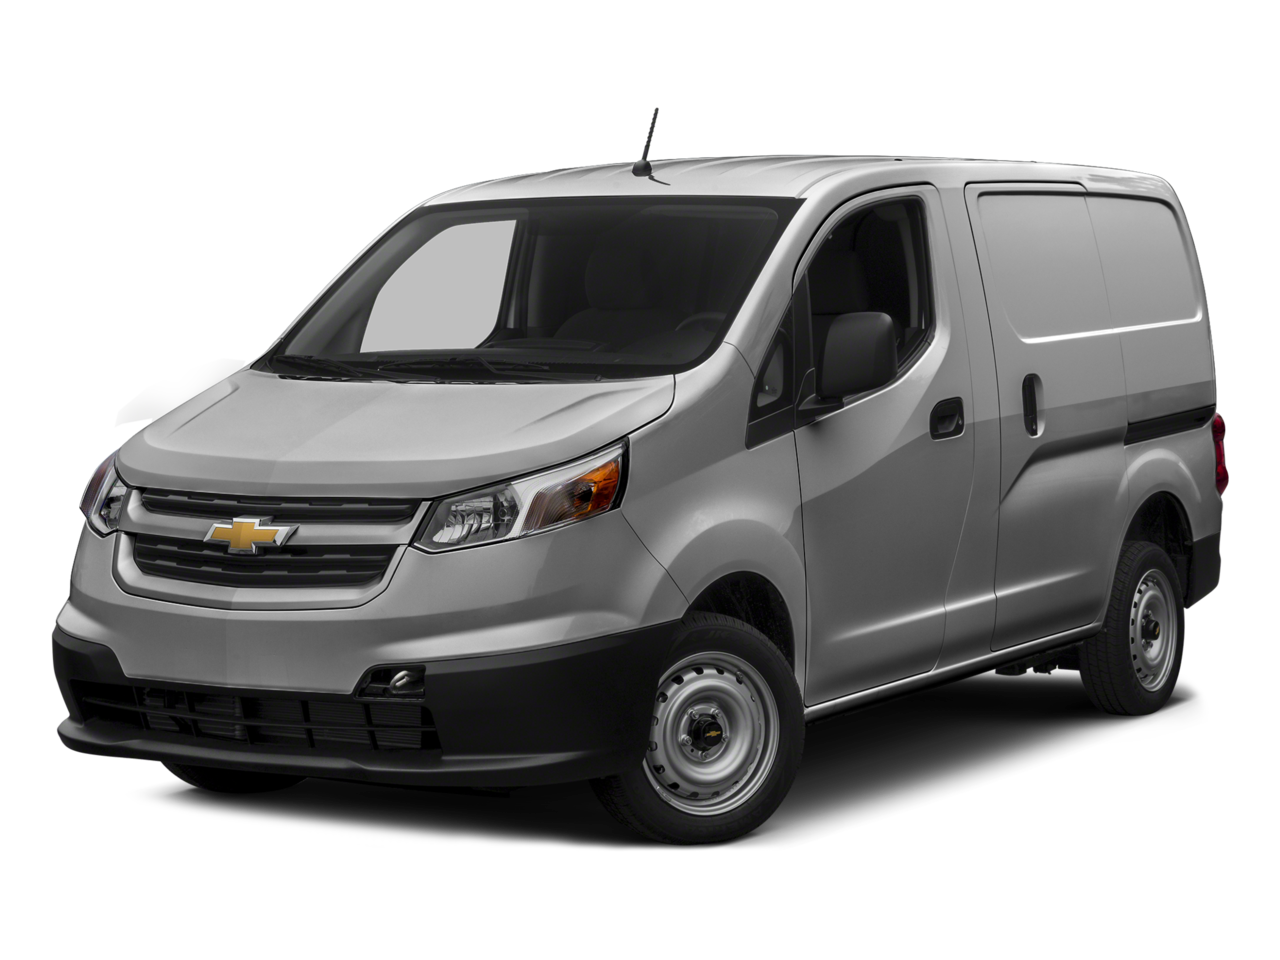 2016 Chevrolet City Express 4